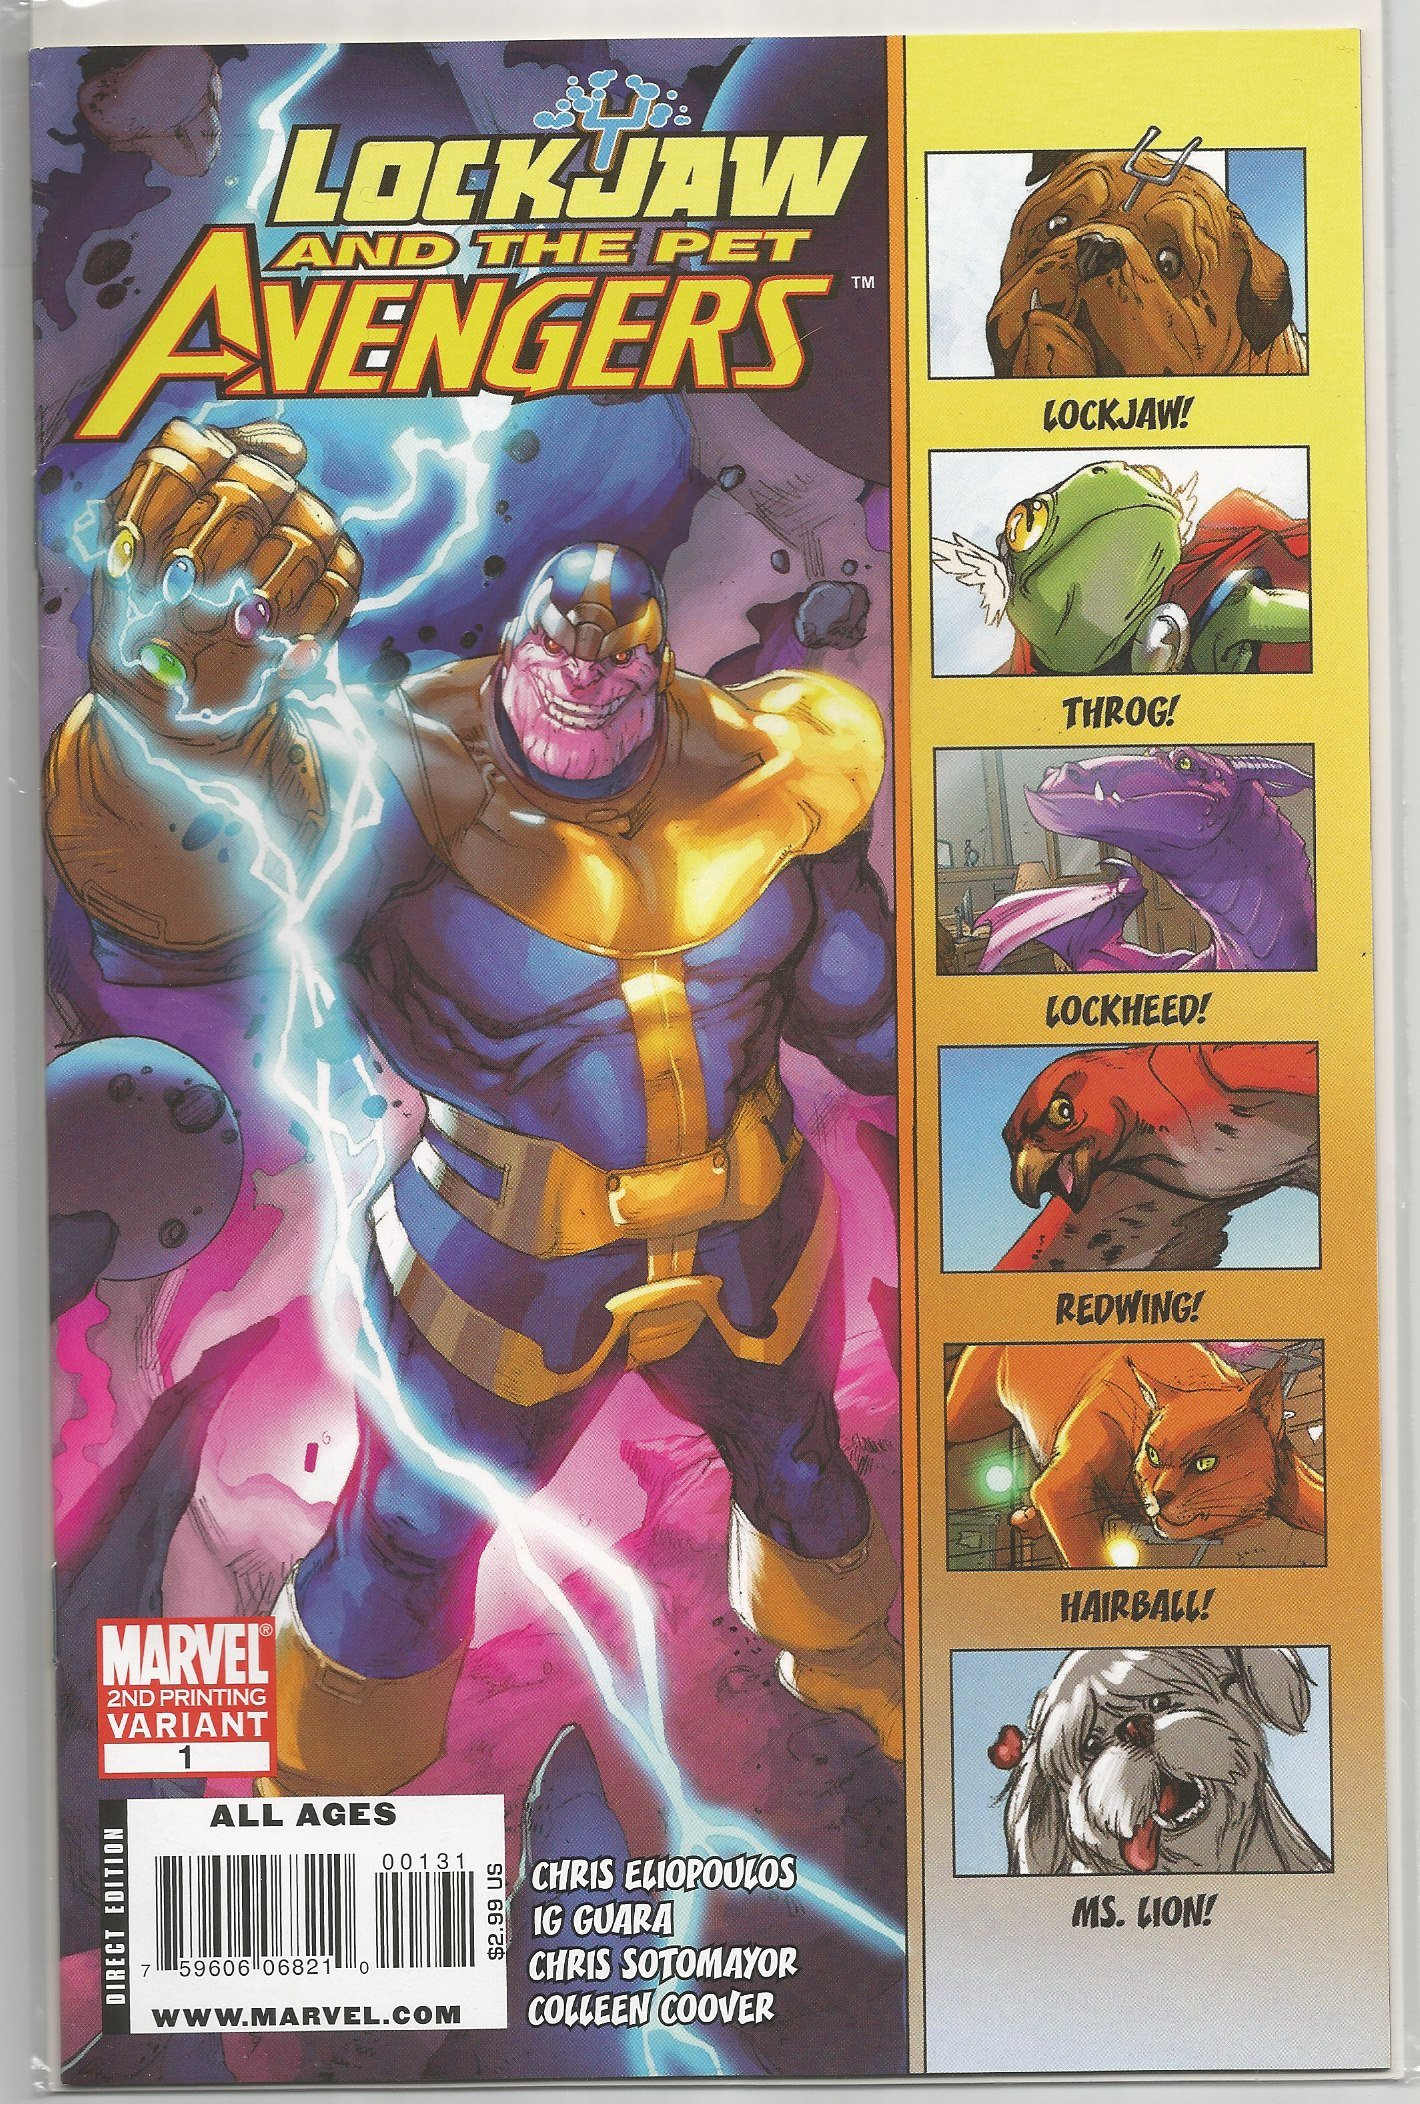 Download Lockjaw and the Pet Avengers #1 2nd print ebook